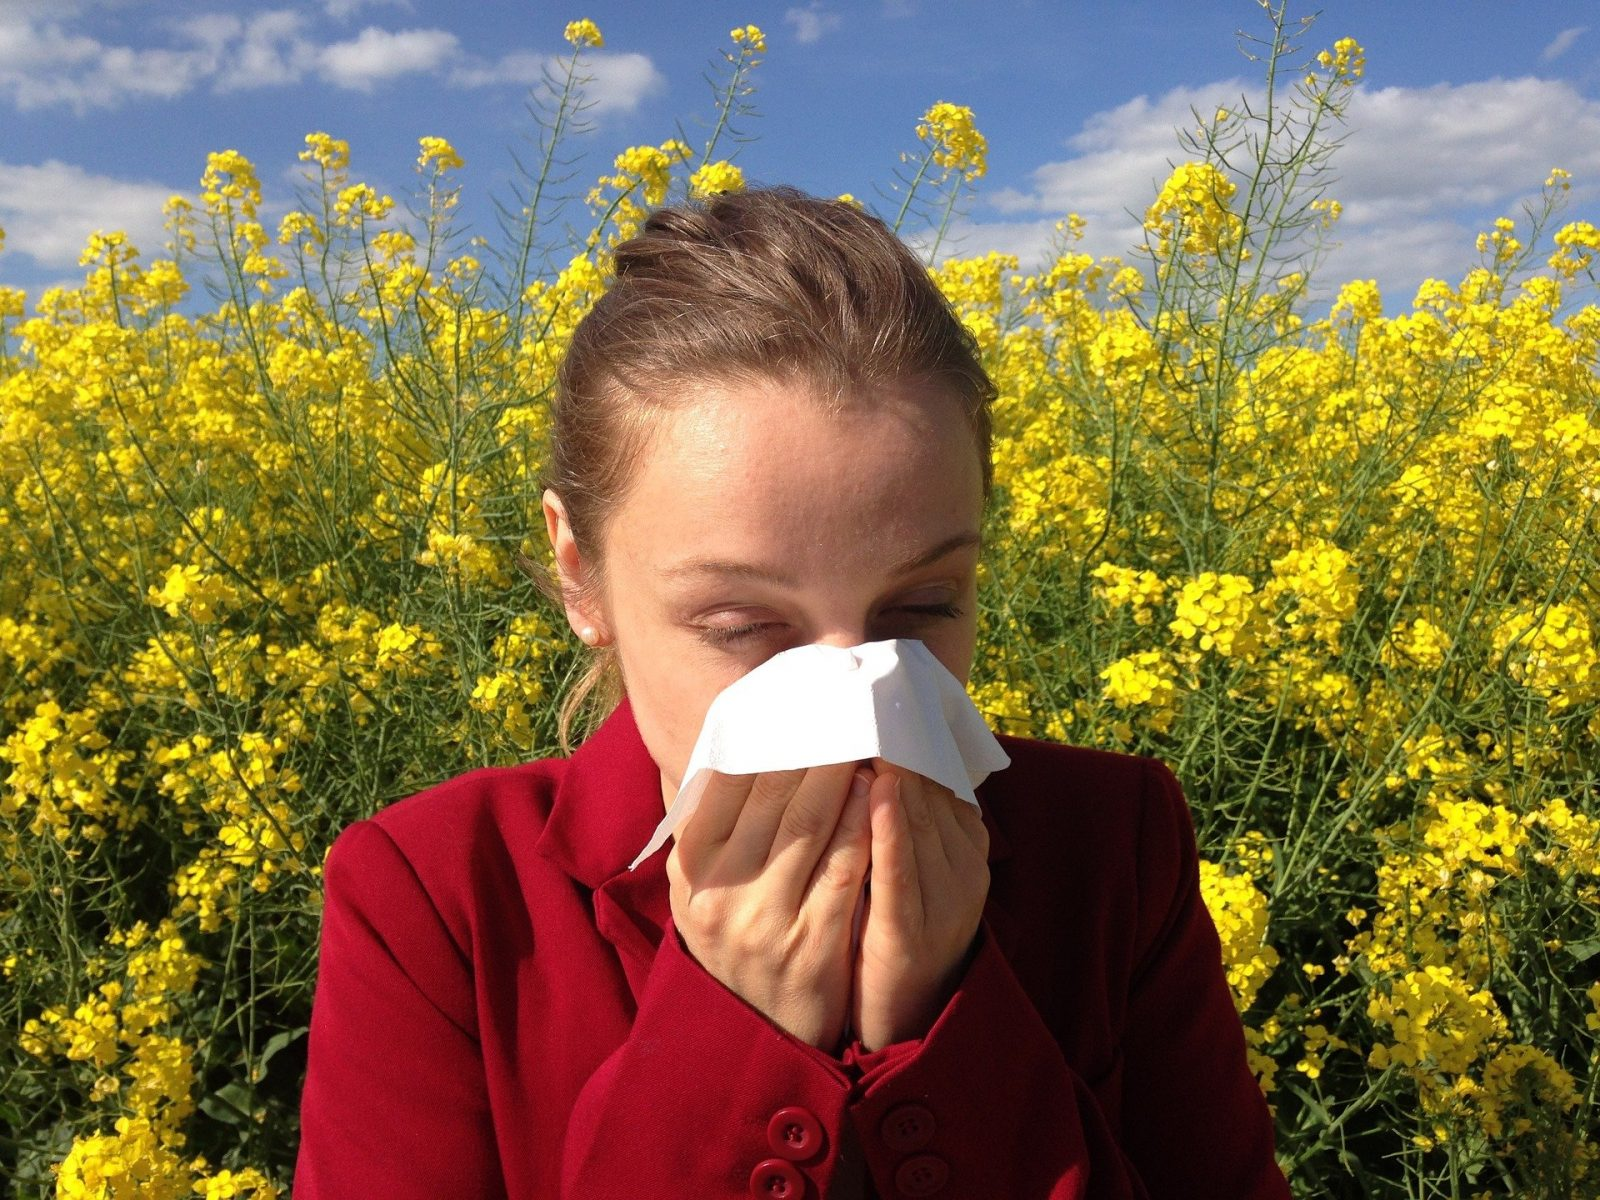 Hay Fever Hacks For Parents, allergy 1738191 1920 1600x1200%, health%